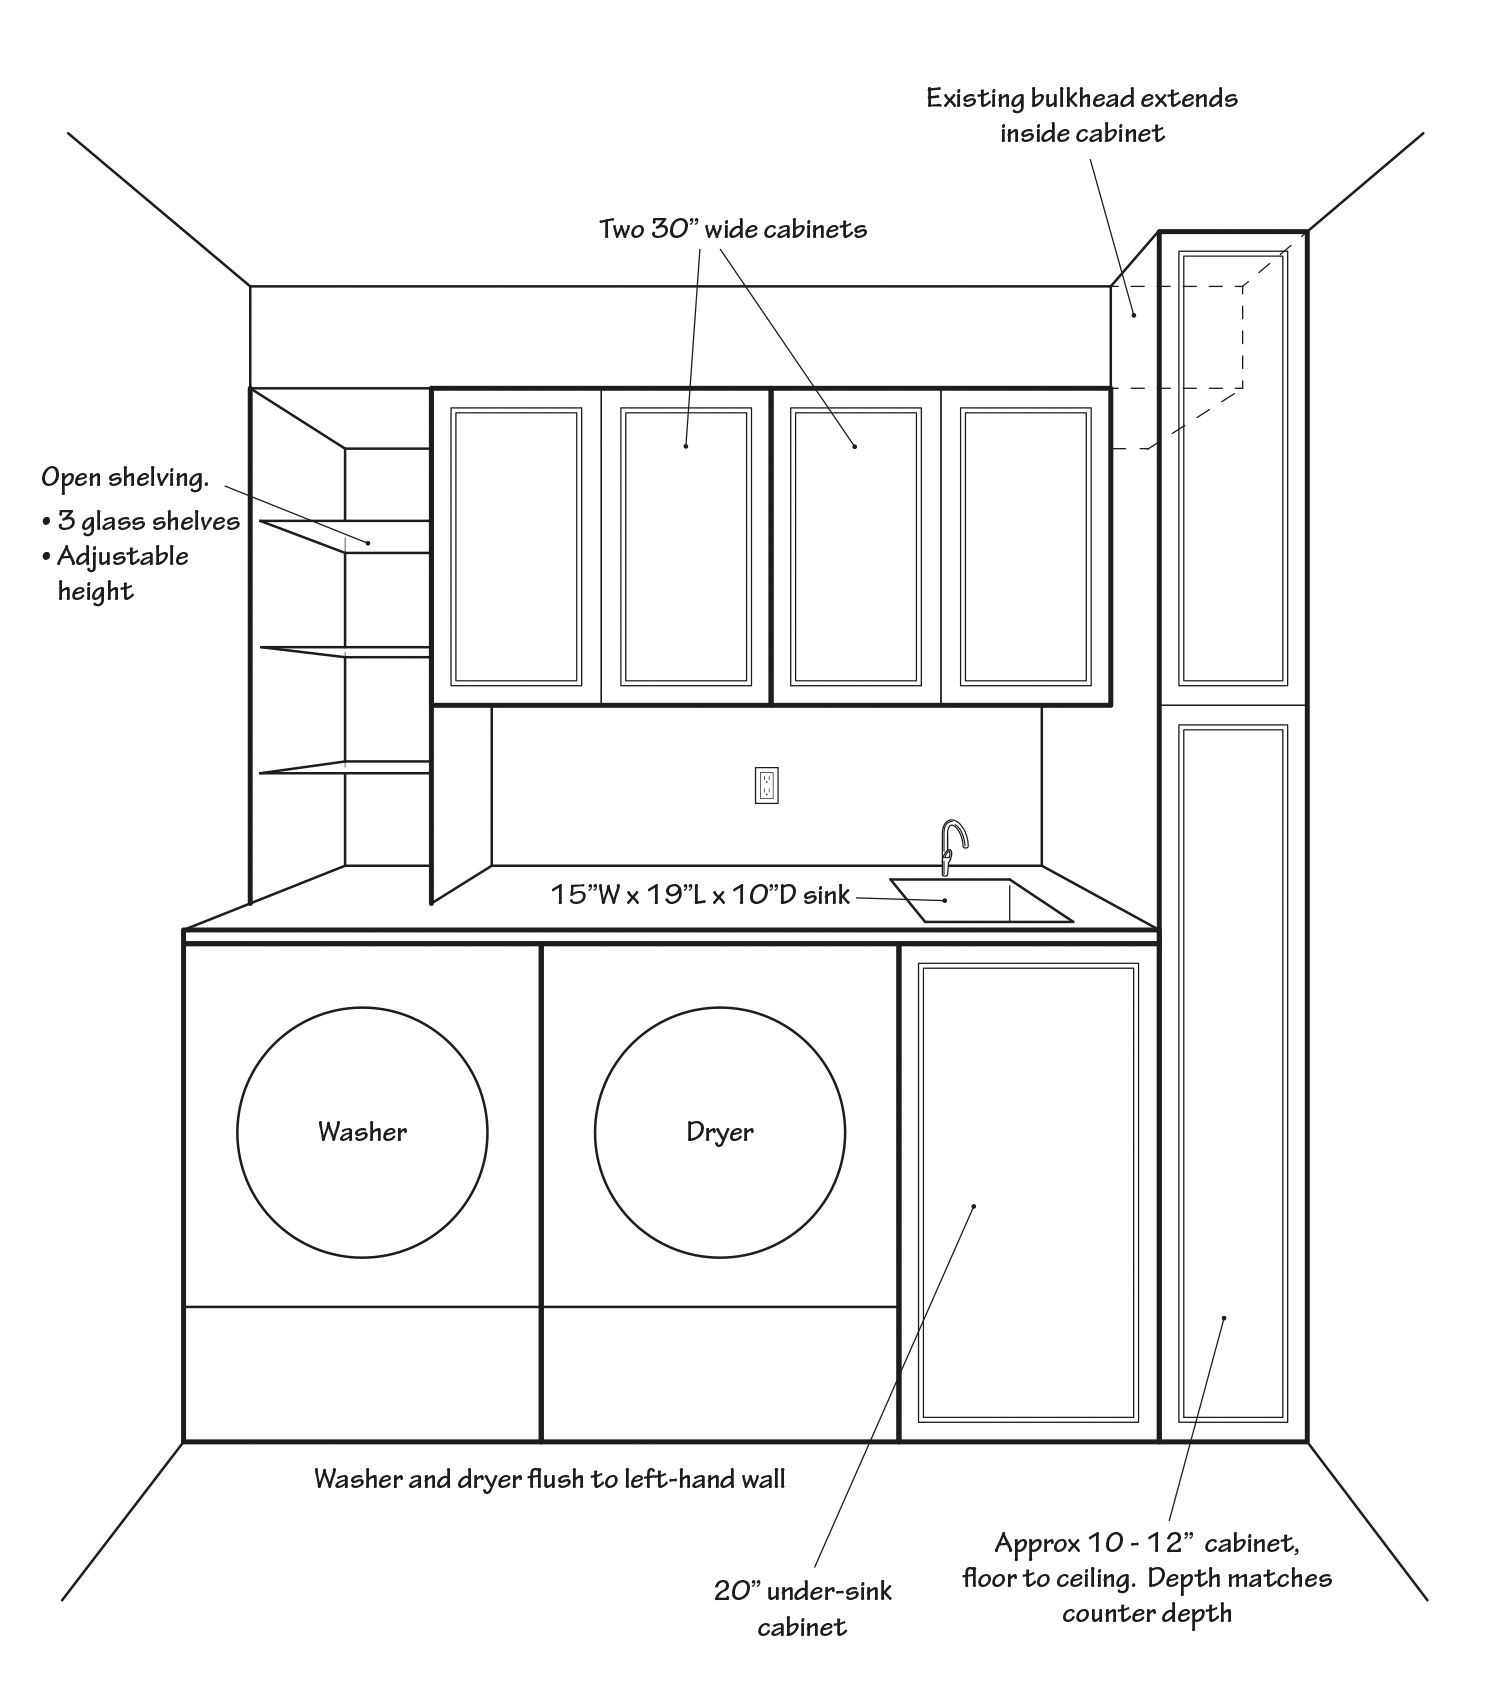 Laundry room perspective drawing laundry room 4113 - Laundry room floor plans ...